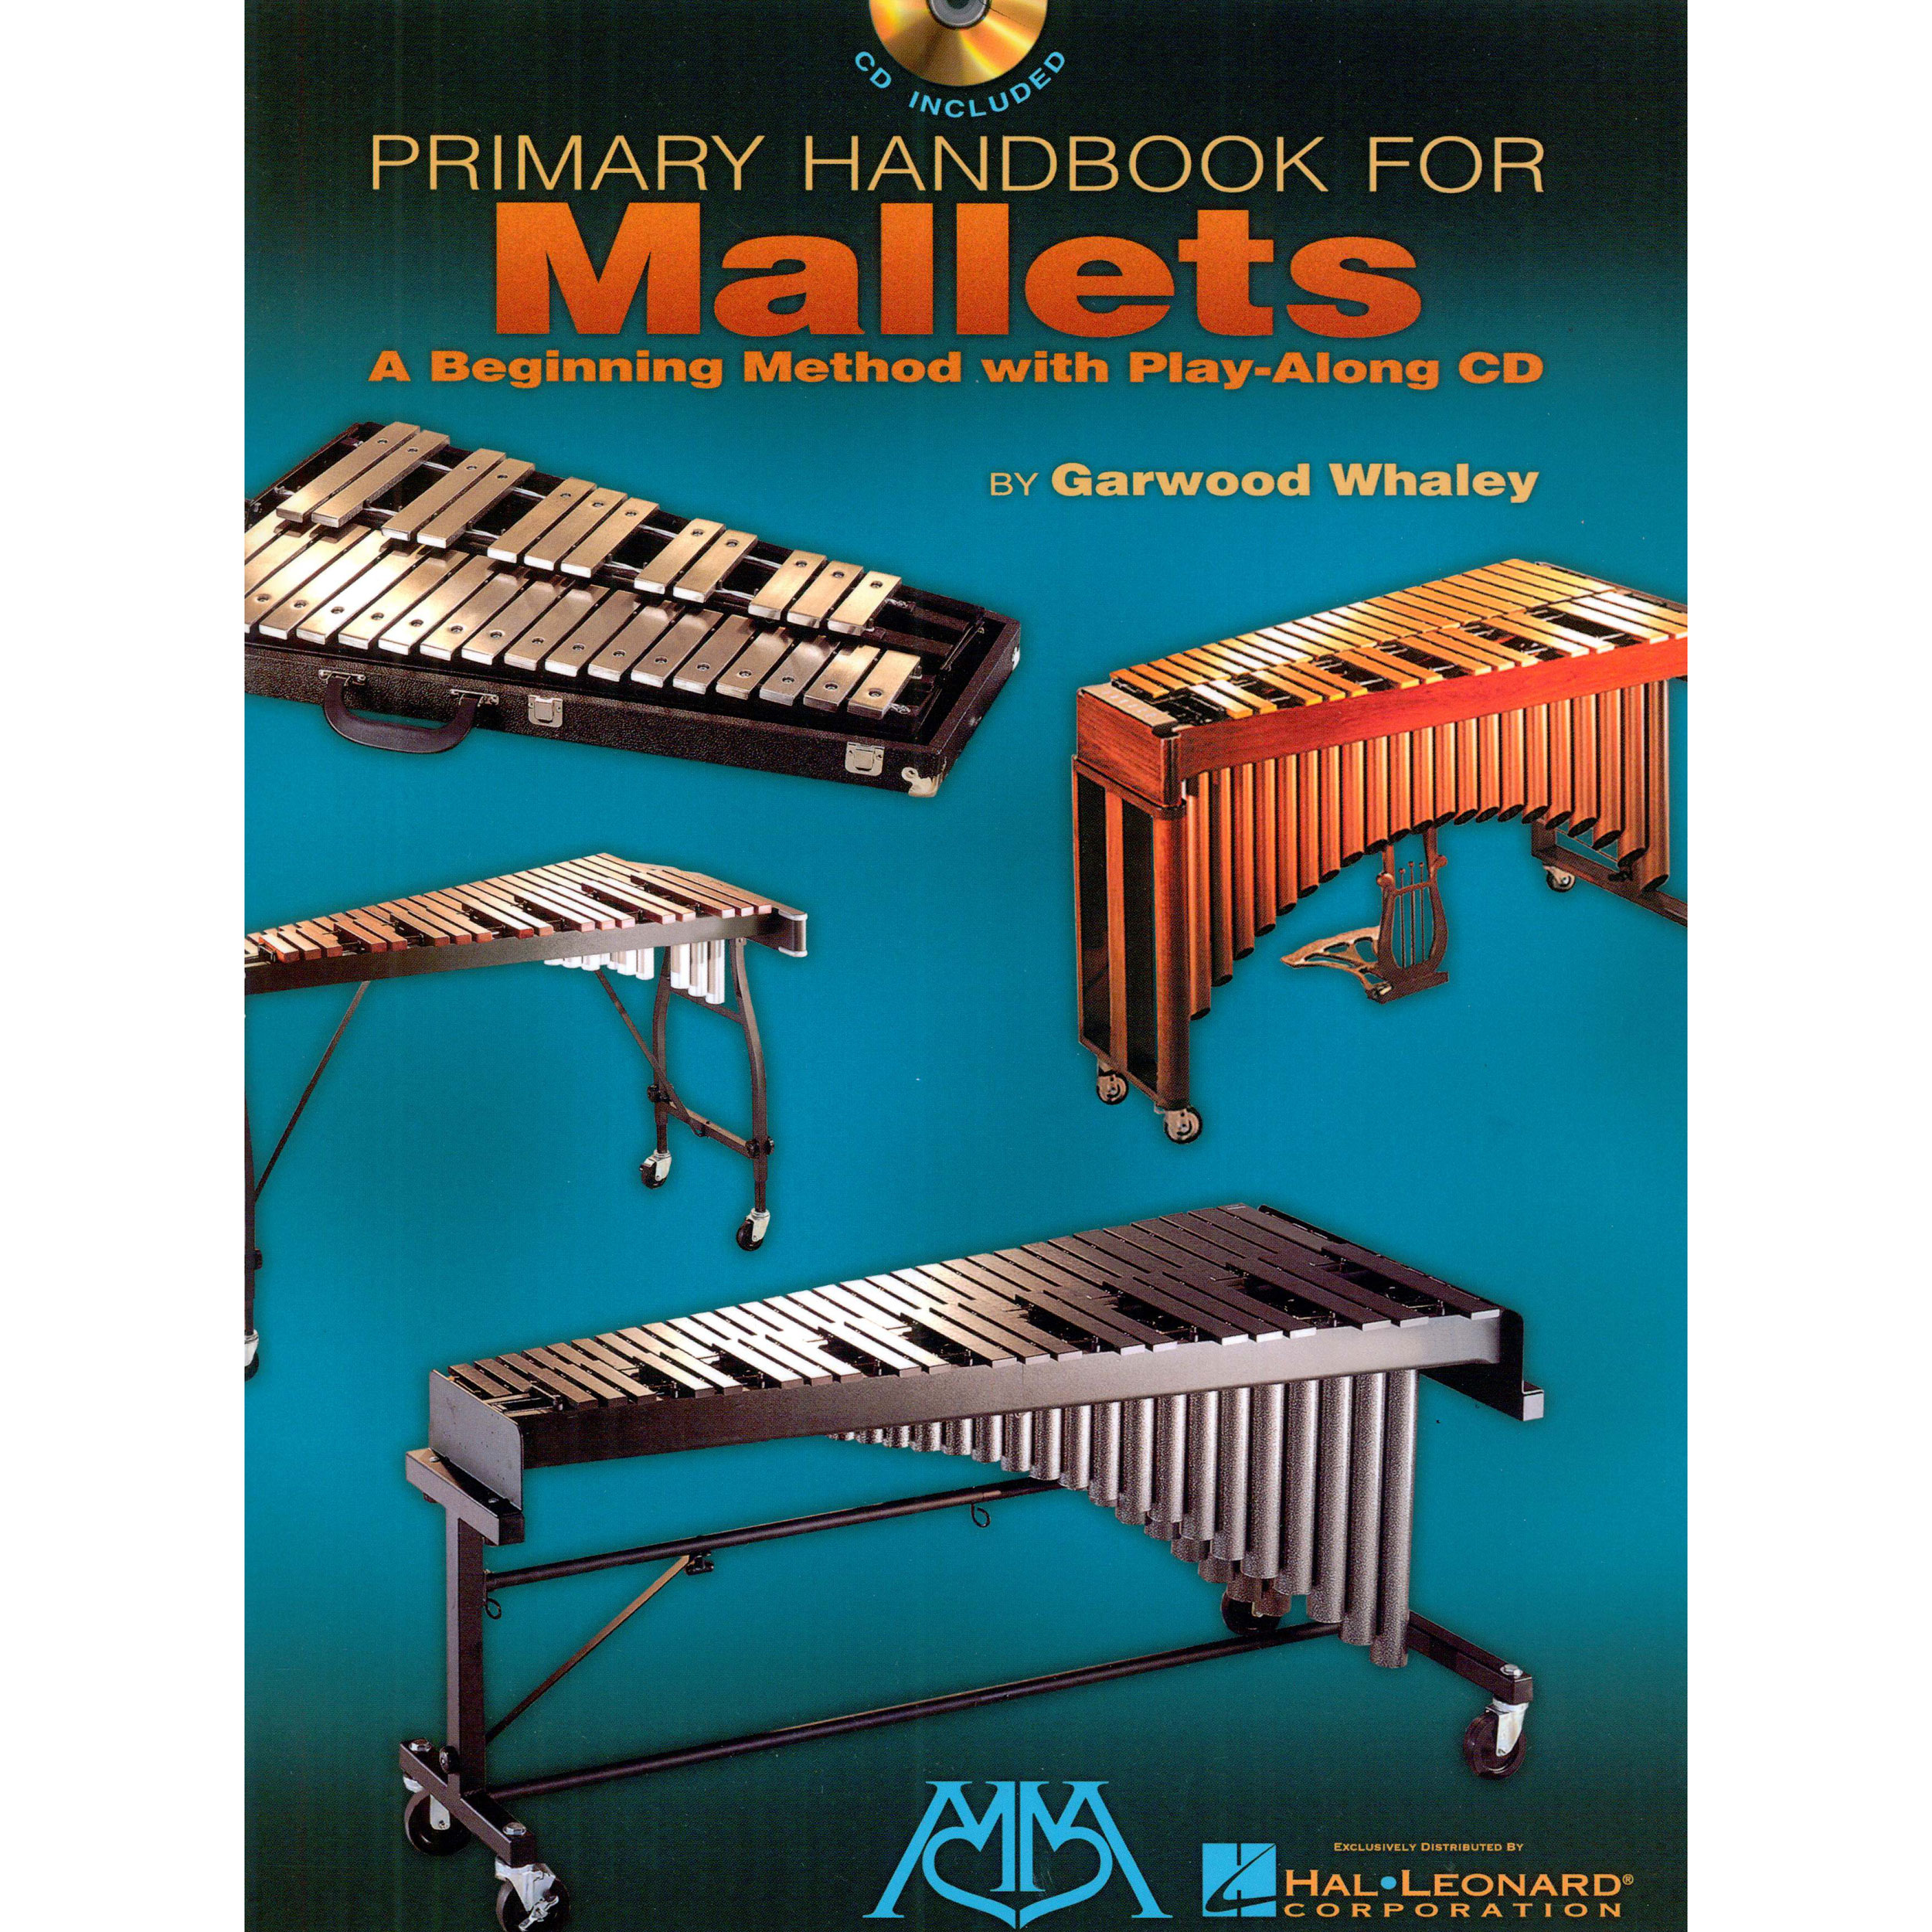 Primary Handbook for Mallets by Garwood Whaley